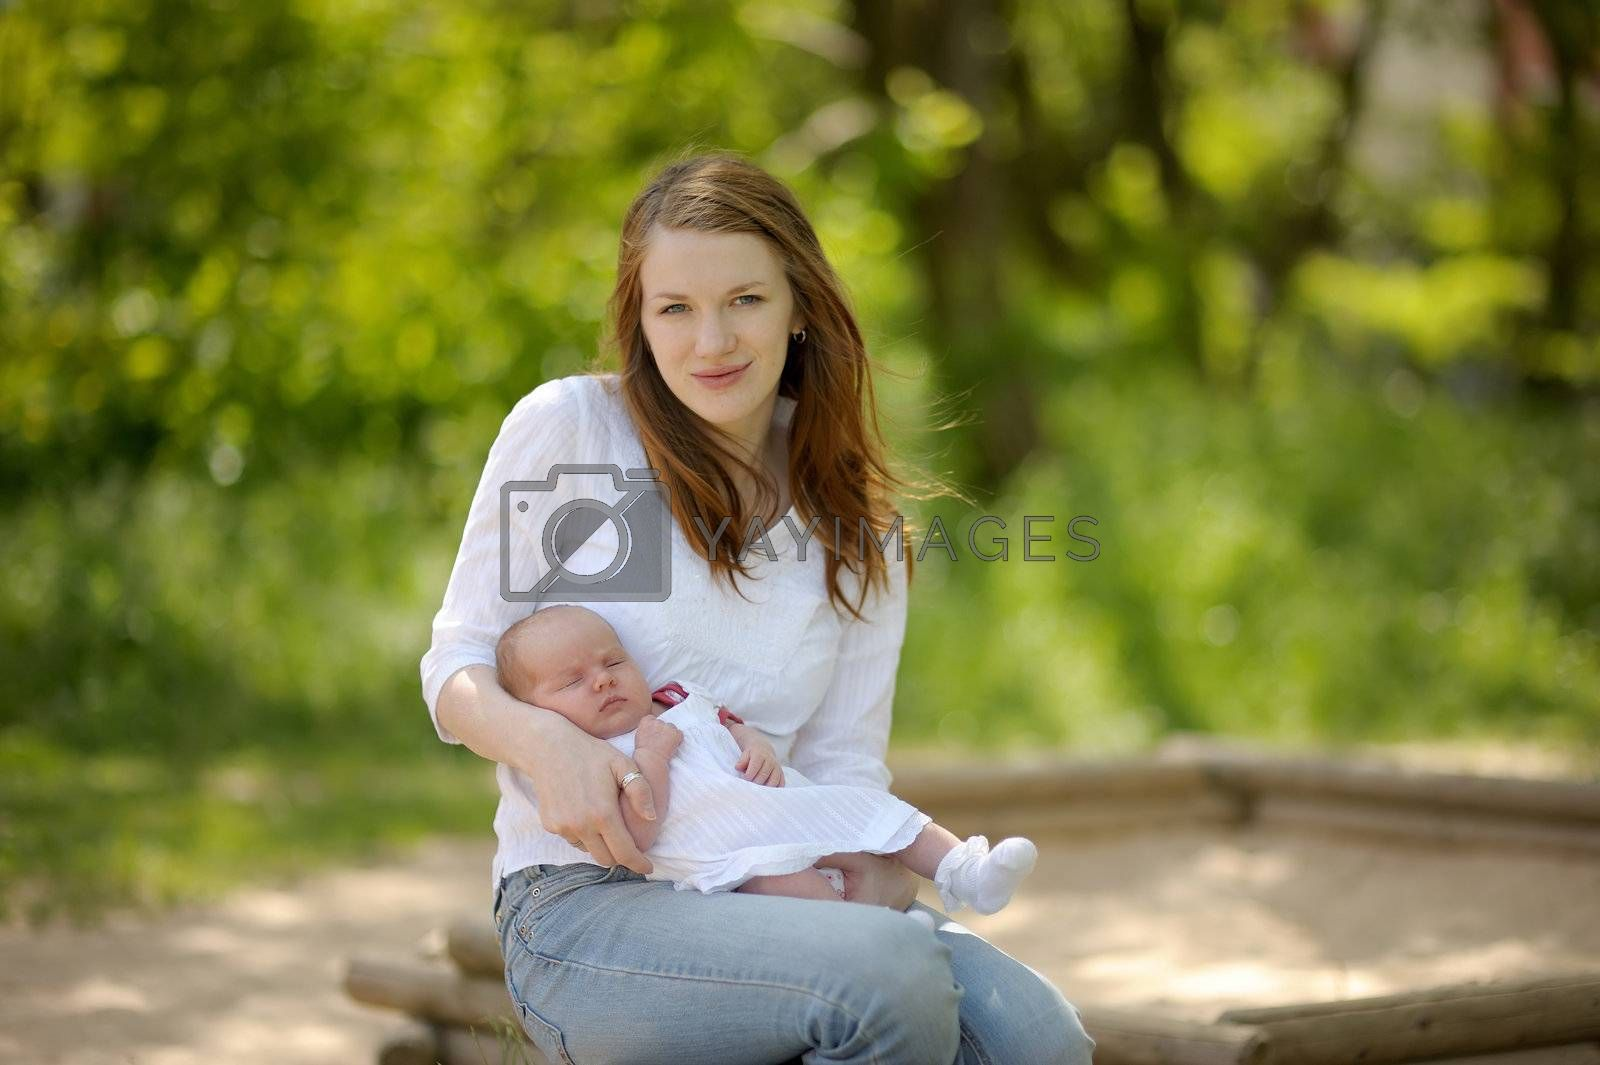 Young mother is holding her newborn baby in the arms